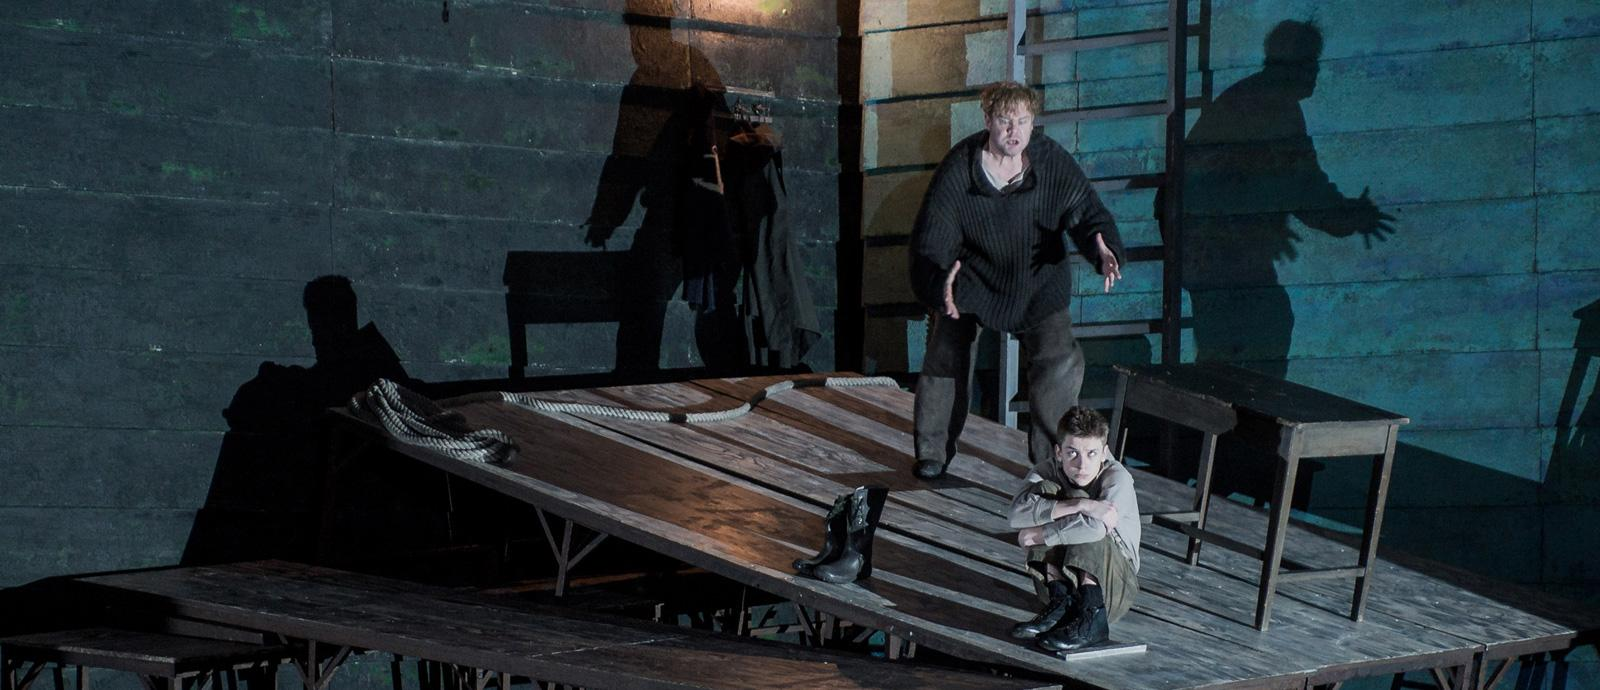 ENO's Peter Grimes - Stuart Skelton as Peter Grimes and Timothy Kirrage as the Apprentice. Photo by Robert Workman.